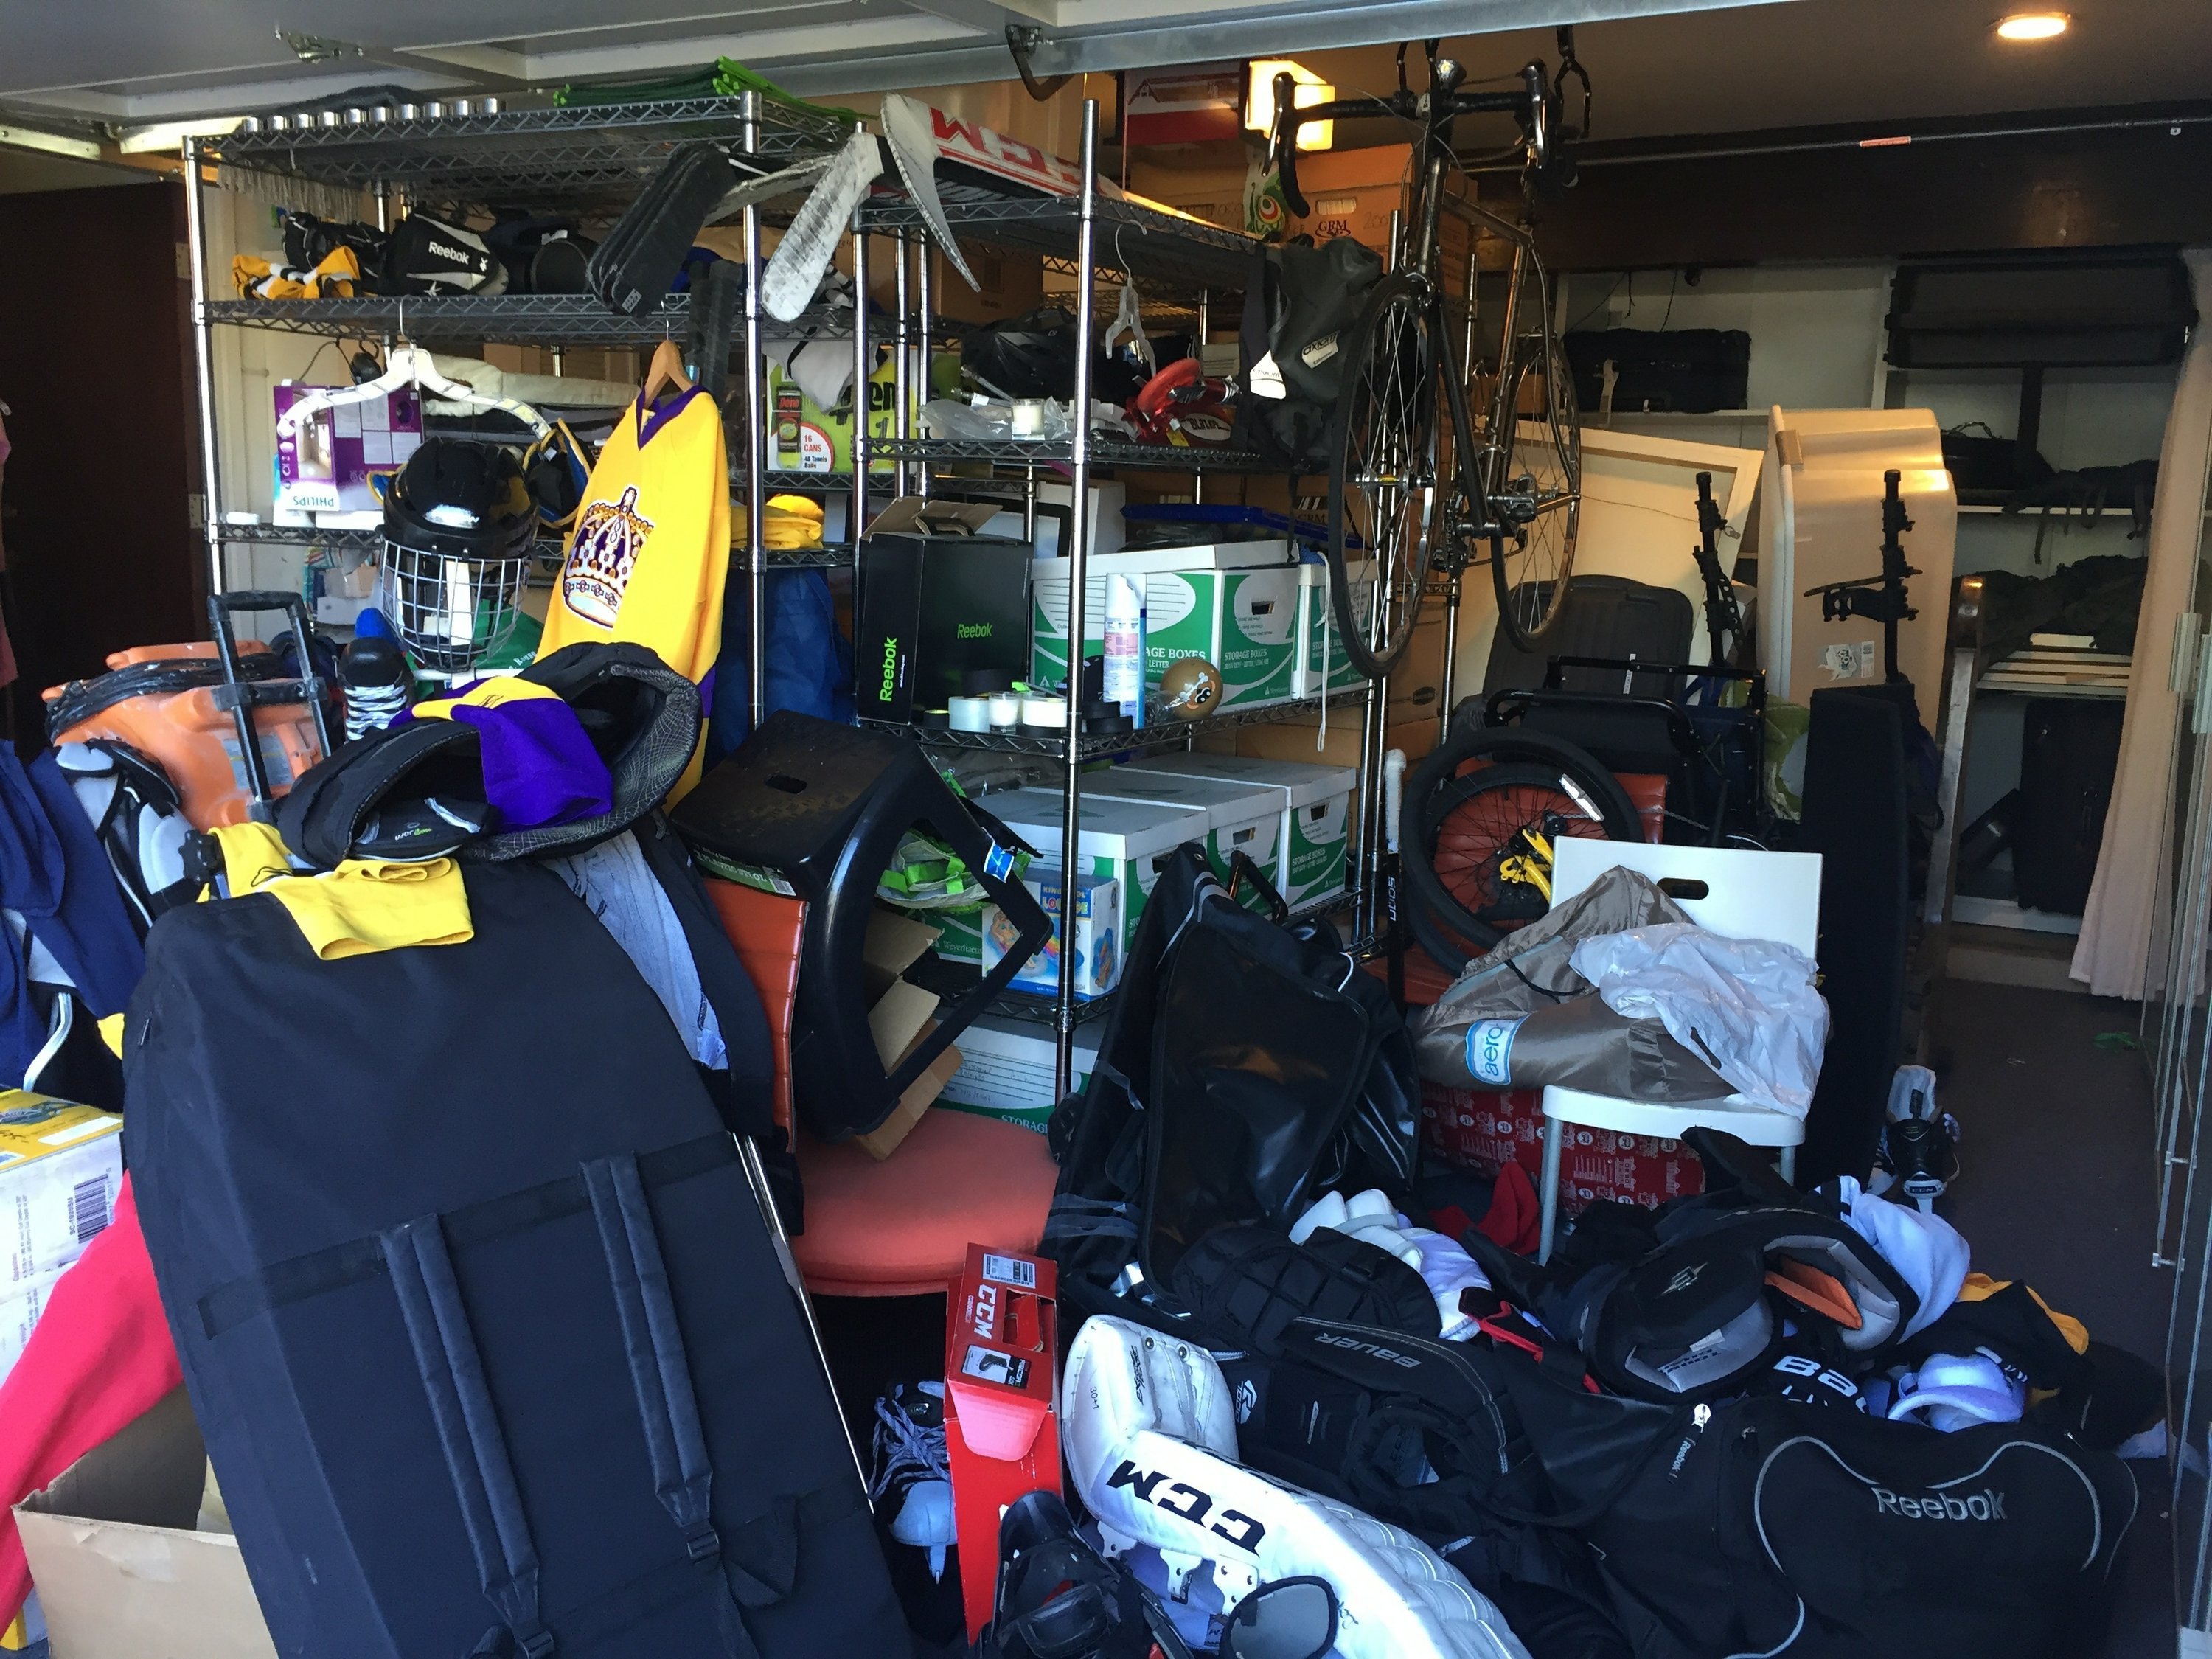 Garage a mess tips for tackling a daunting job